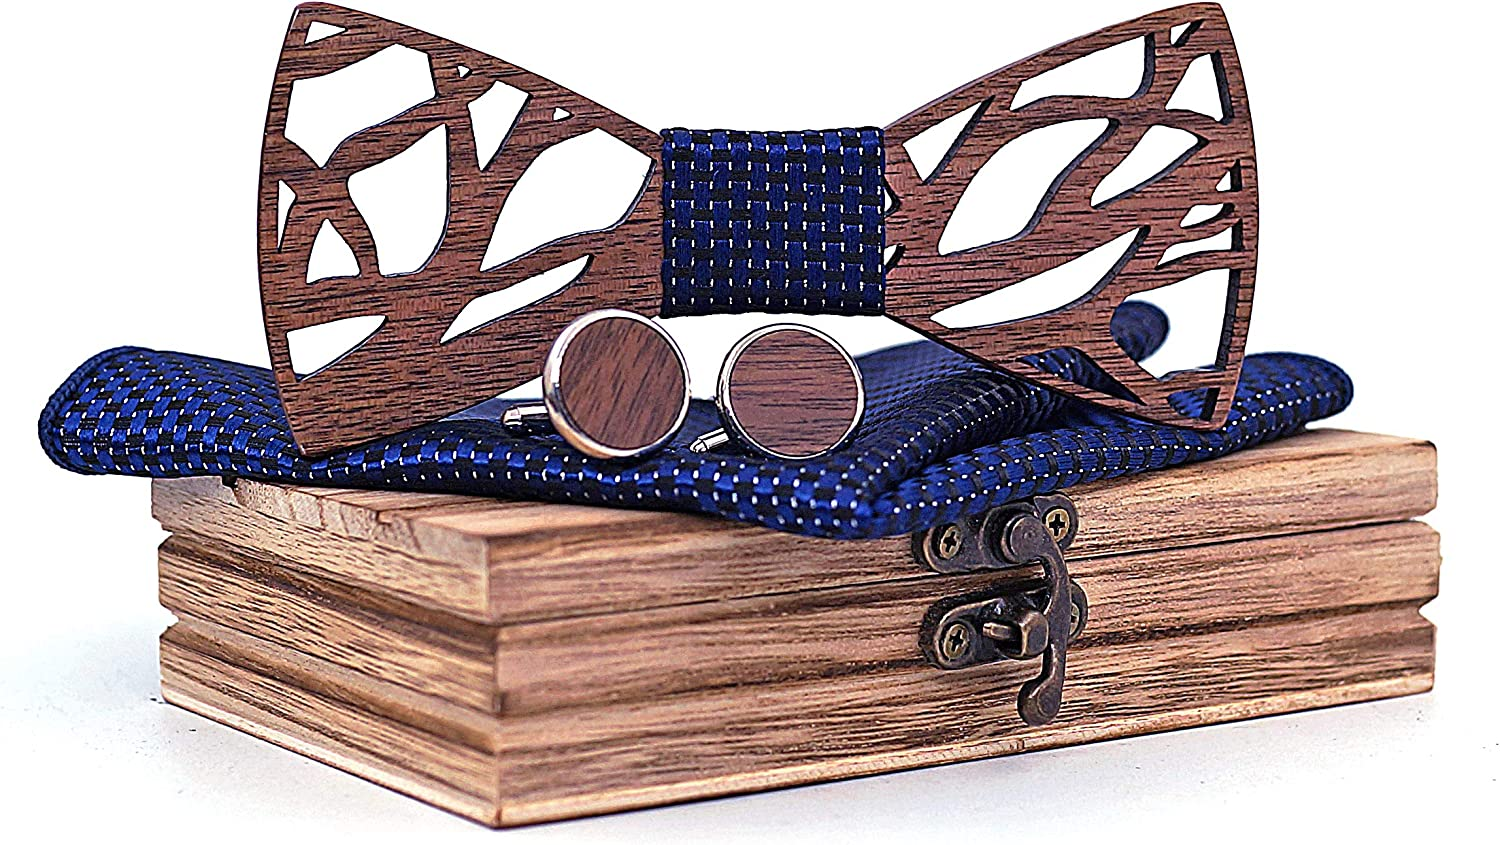 Mahoosive Men's Wood Bow Tie and With Wooden Cas Hankerchief Set Max 48% OFF Sale special price